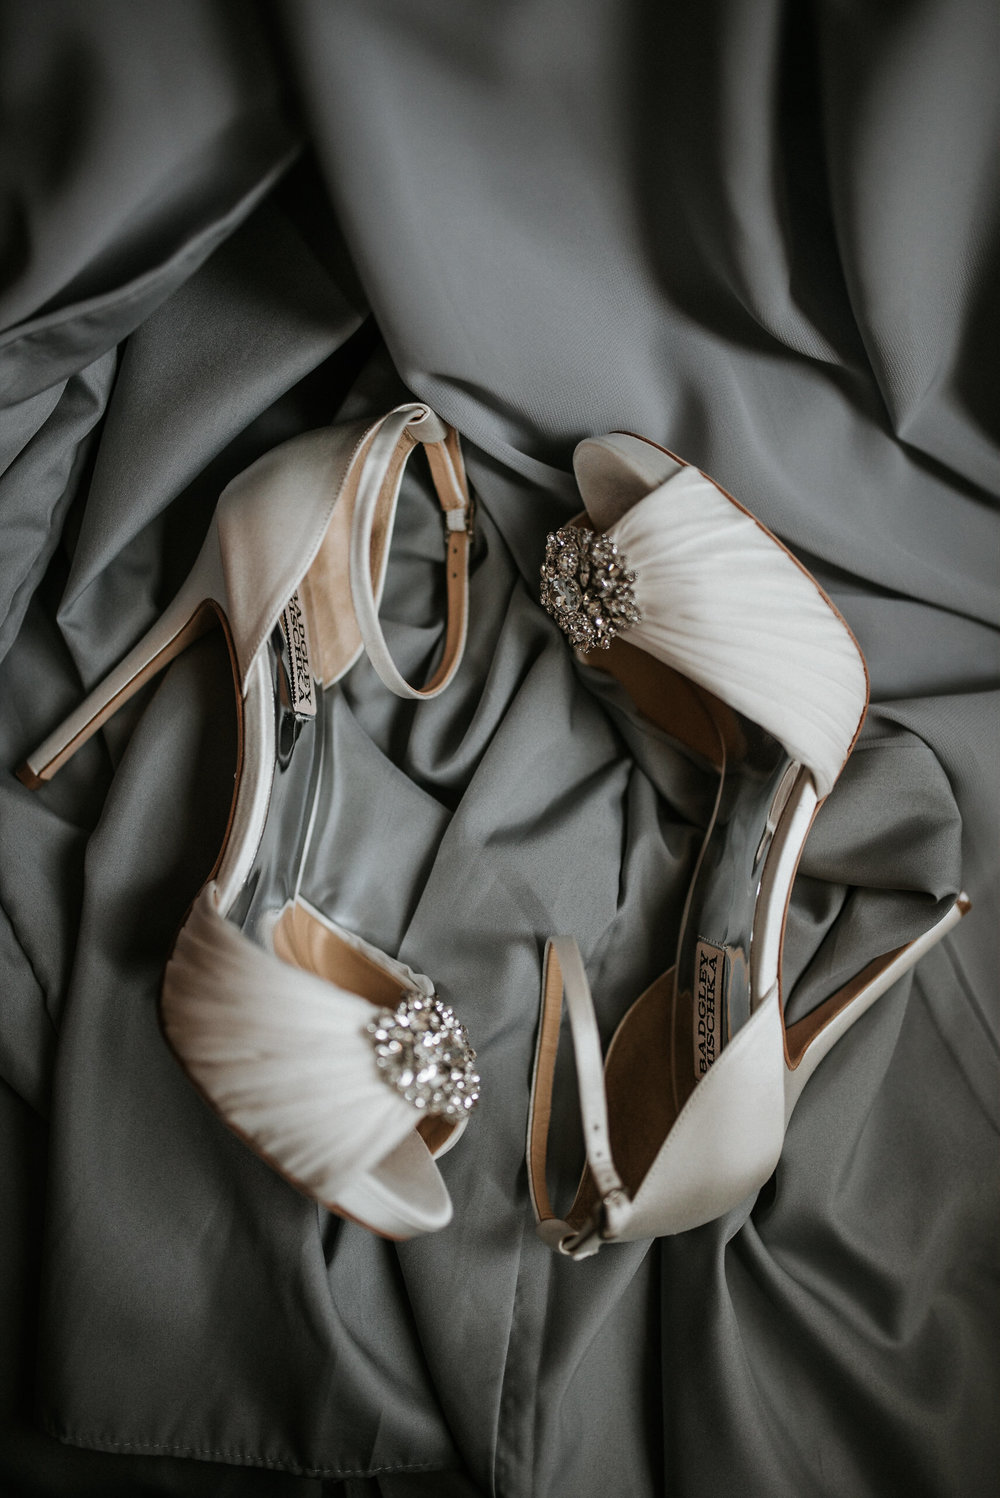 Bridal shoes on sheets